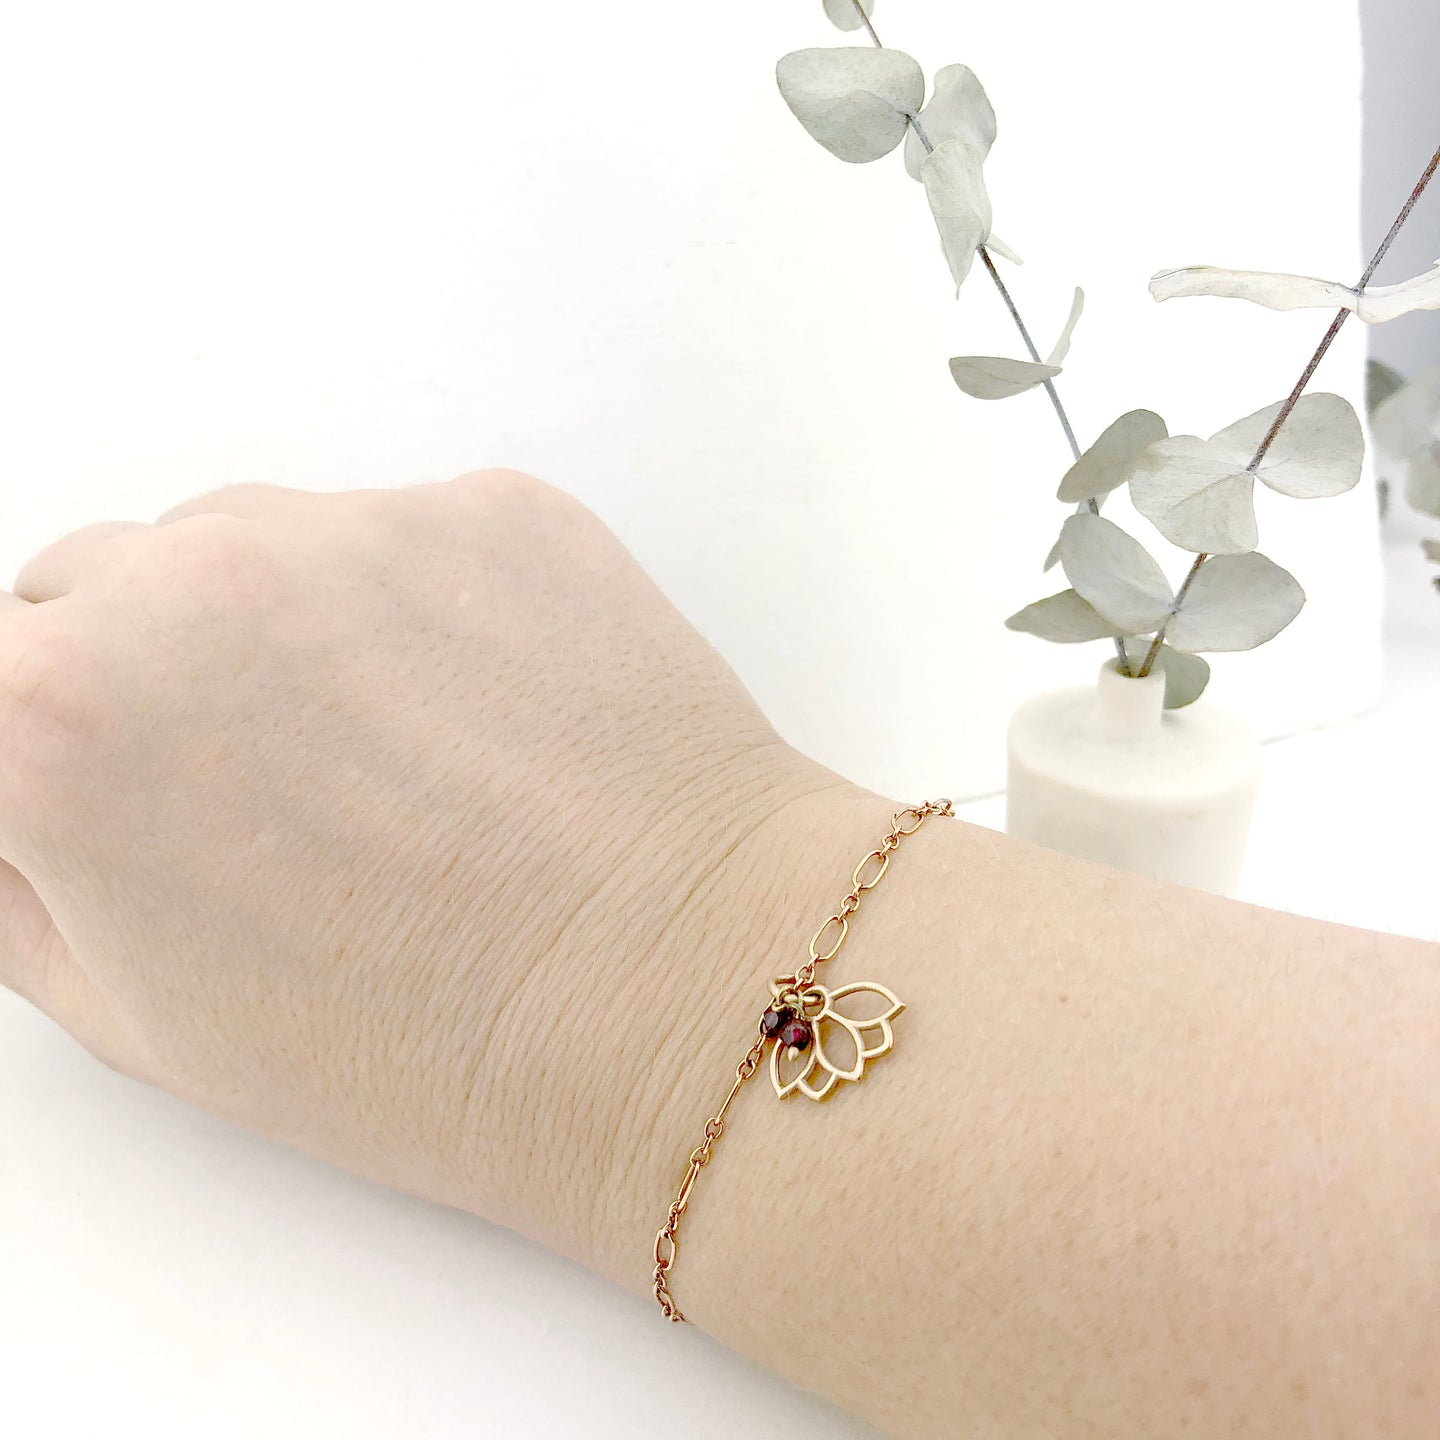 Garnet gemstone 9ct Rose gold Lotus charm (on gold plated) bracelet, January Birthstone.